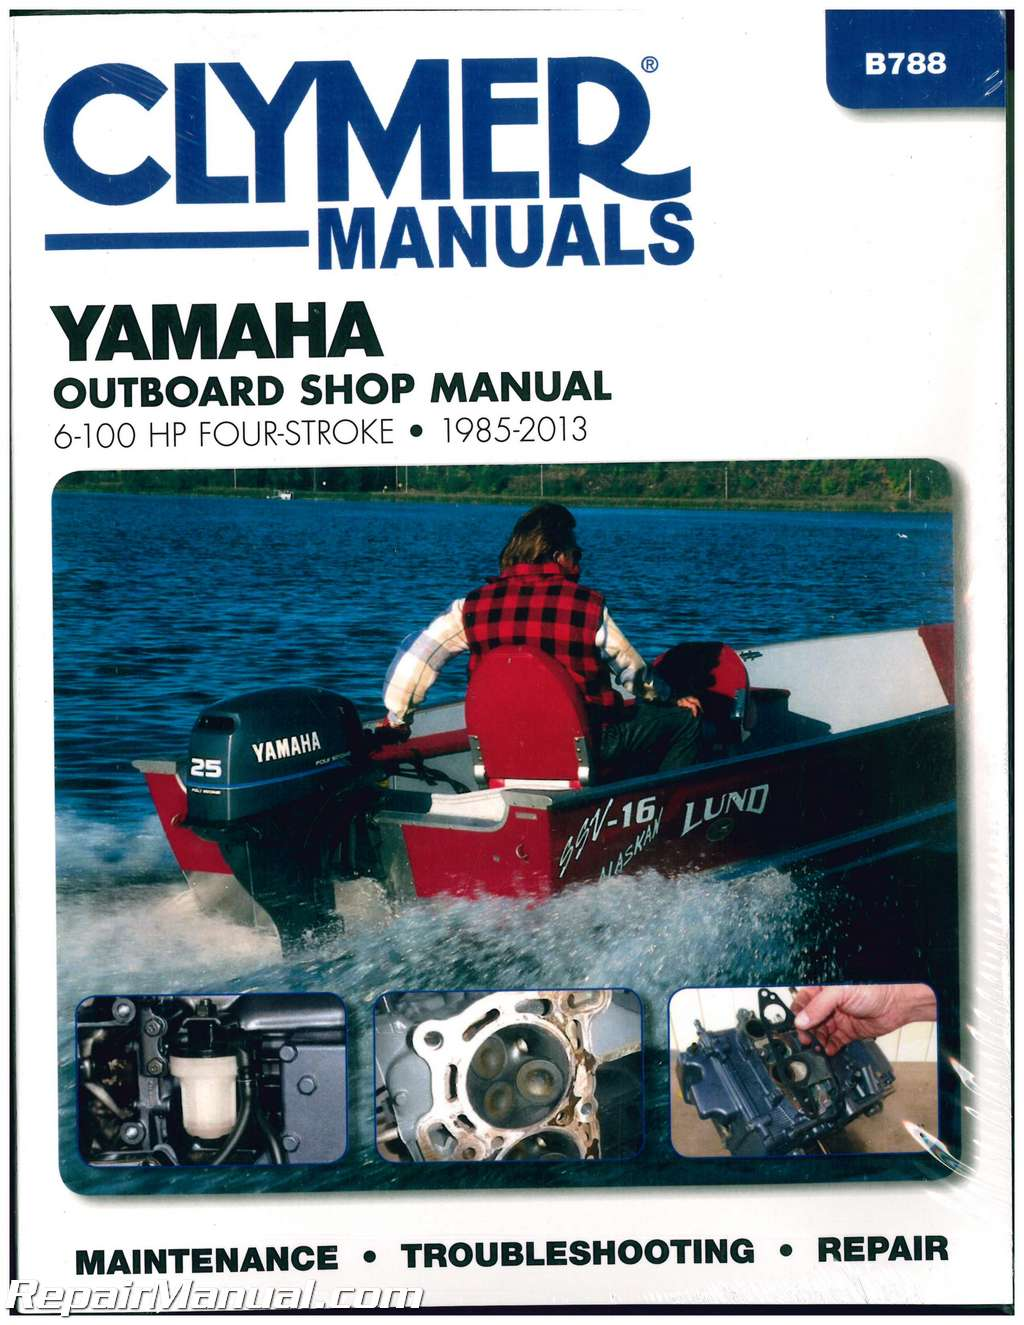 Images of Yamaha Outboard Repair Manual